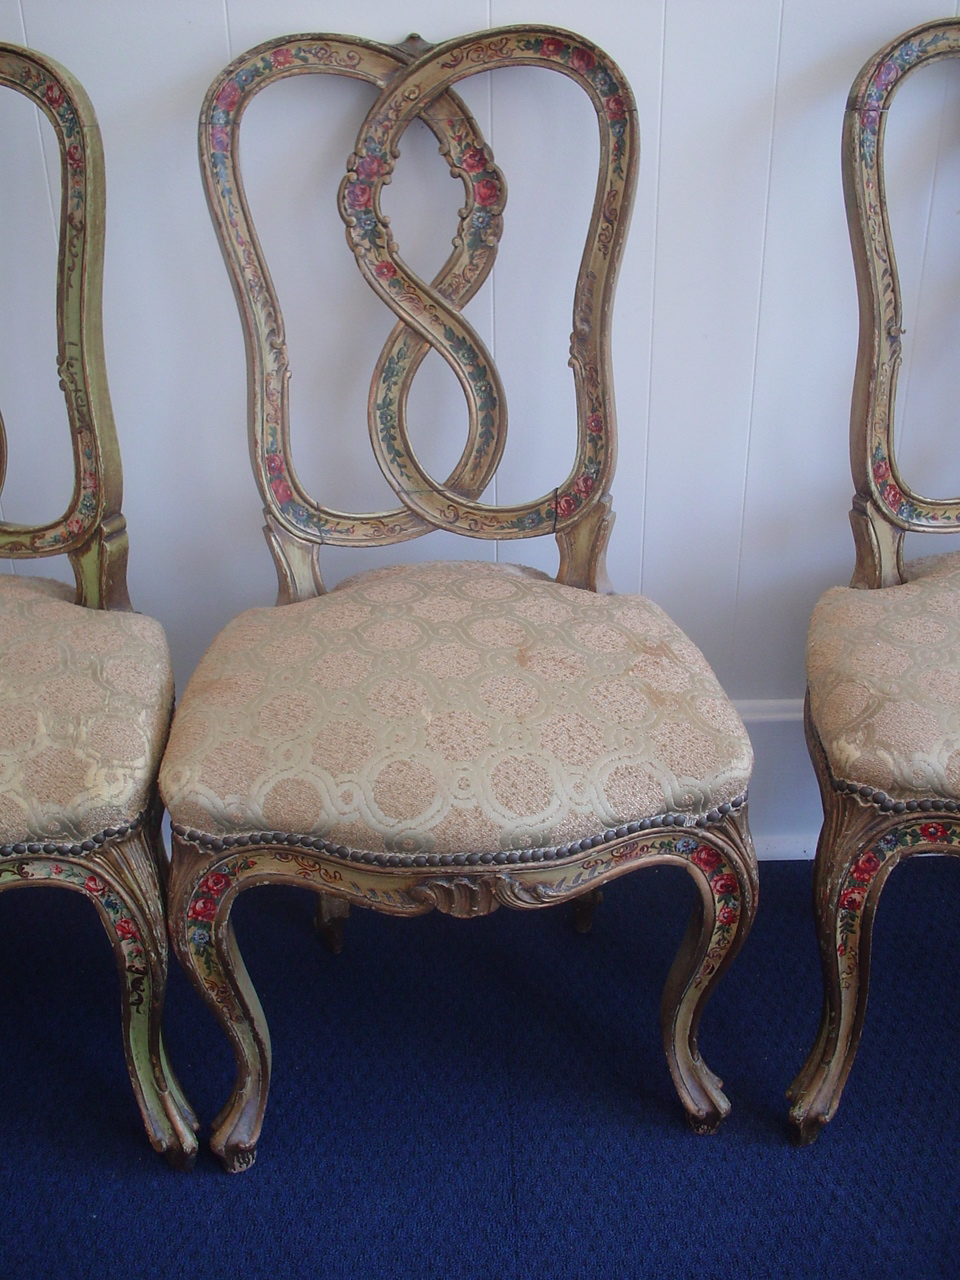 Tags: Chairs, Country French Chairs, Floral, Original Paint, Roses, Set Of  Four Chairs